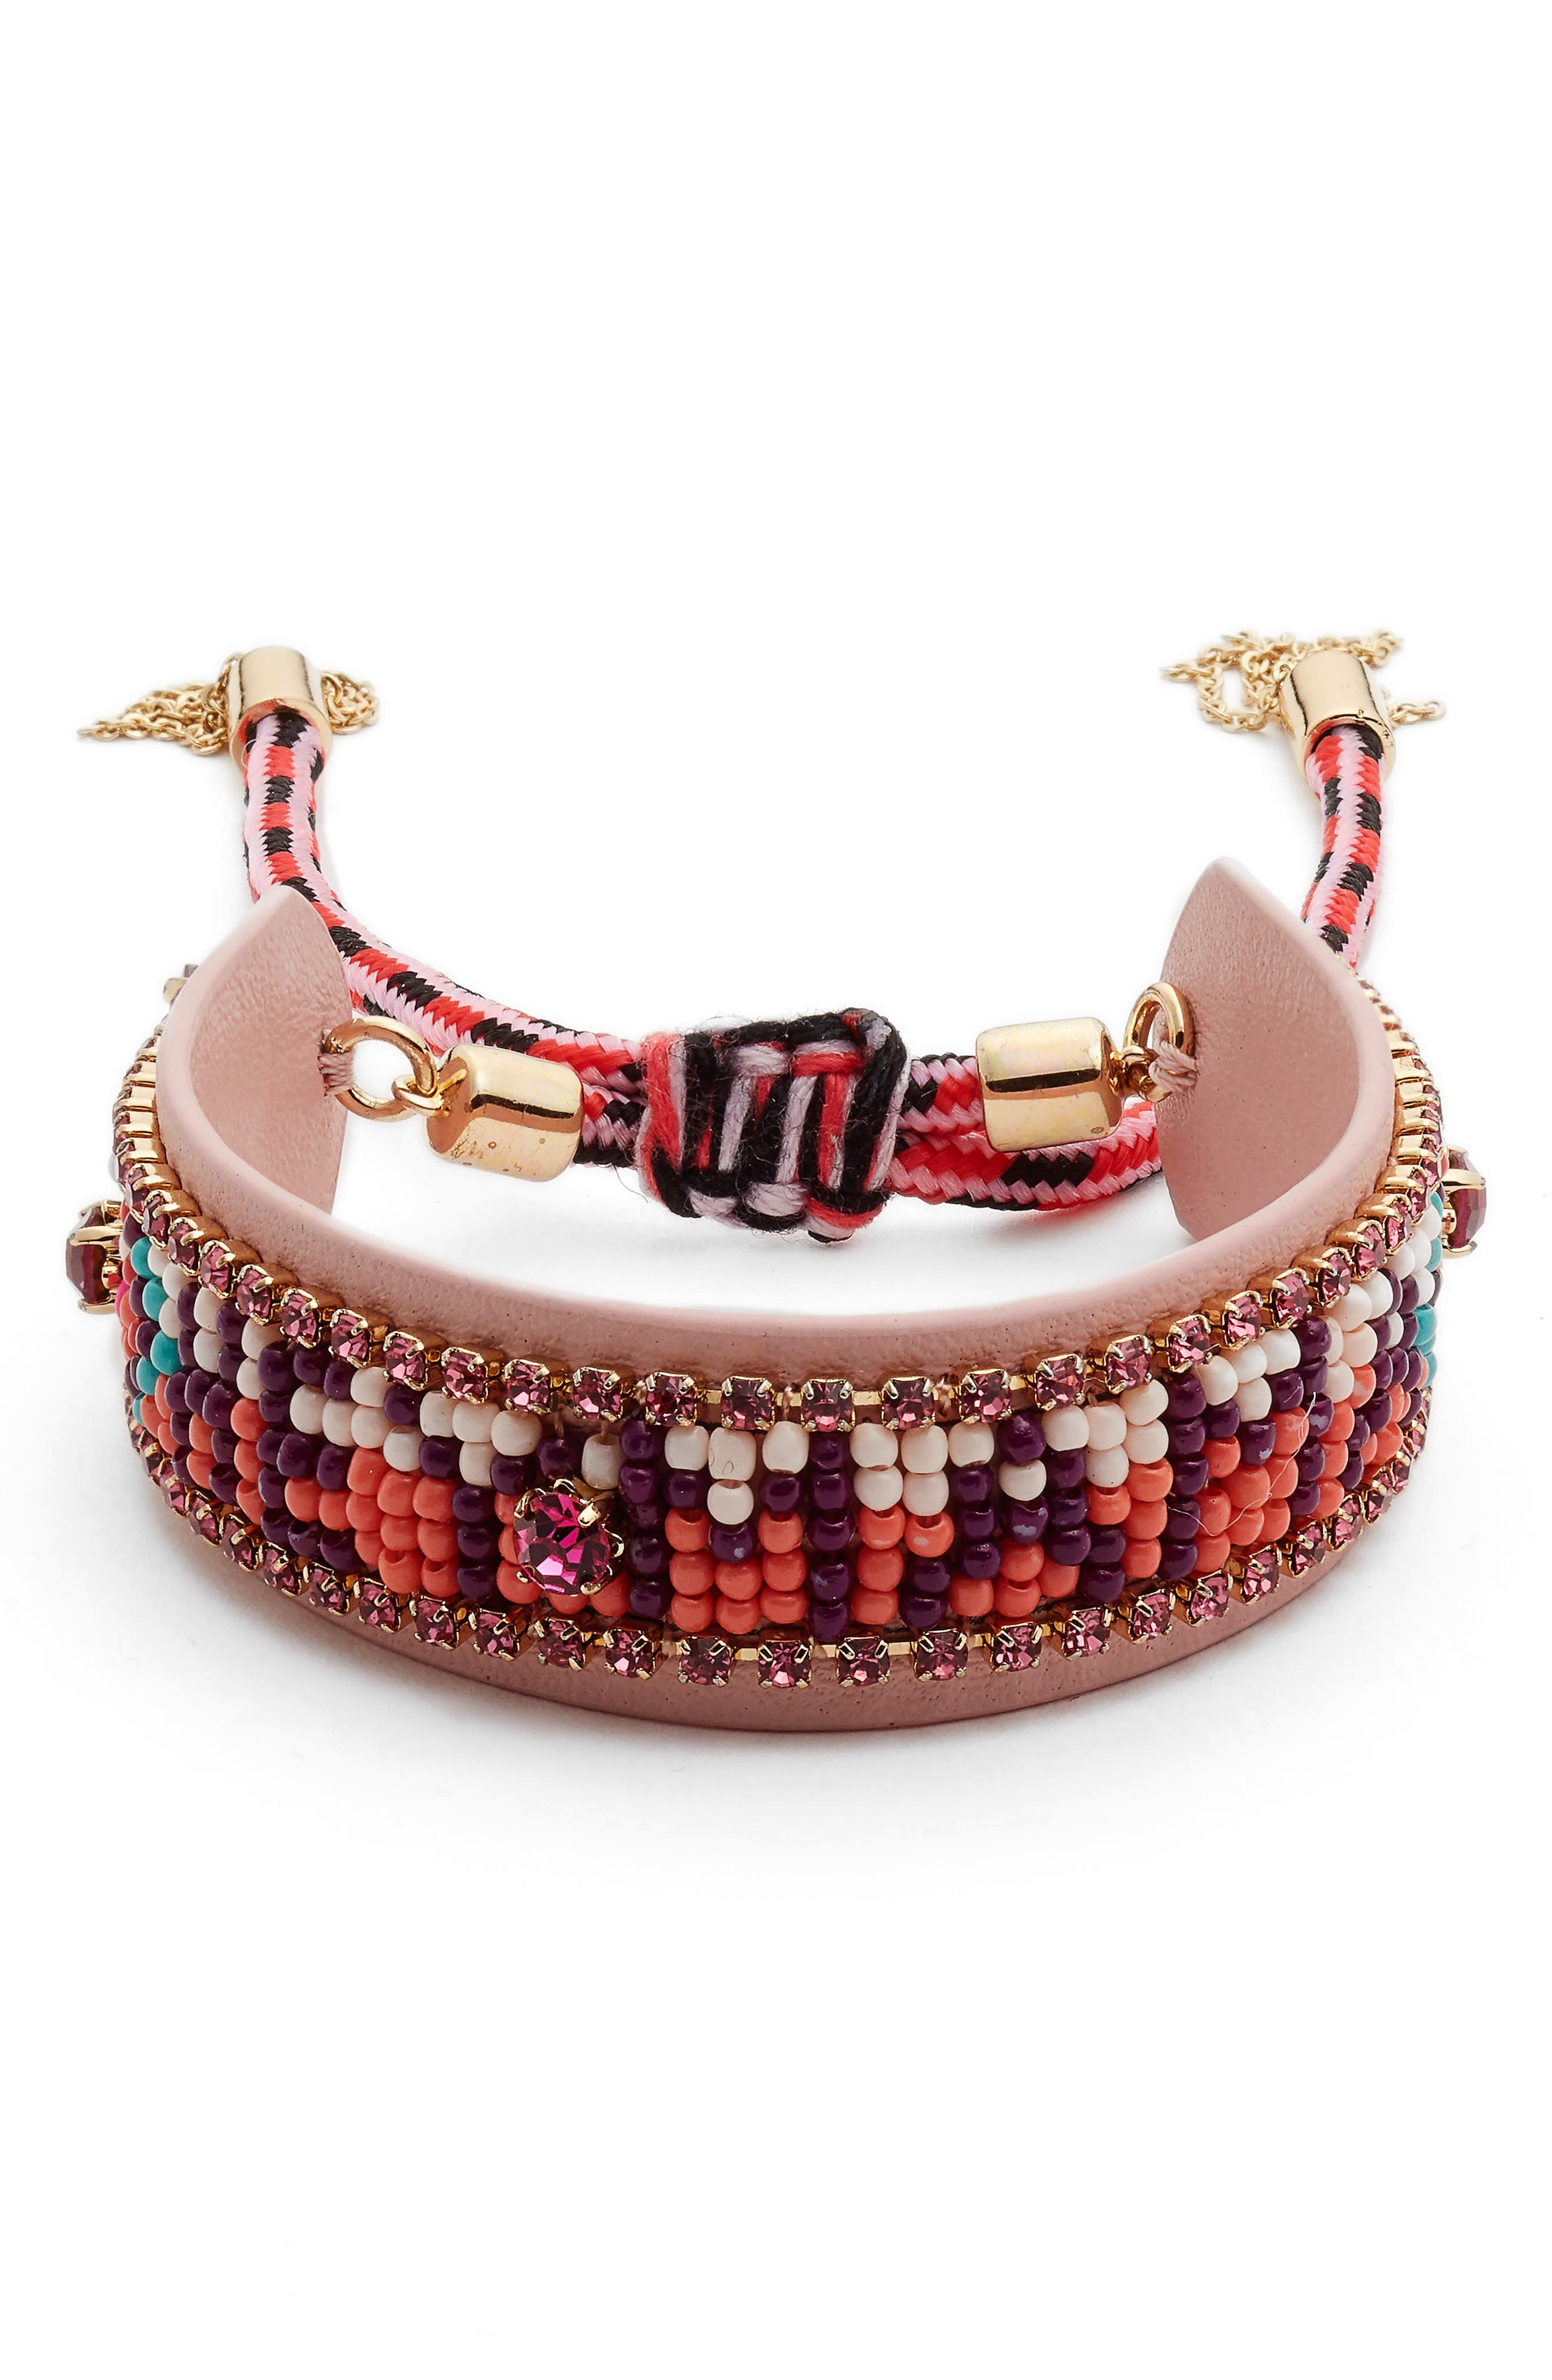 Beaded Friendship Bracelet,                             Main thumbnail 1, color,                             Pink/ Orange